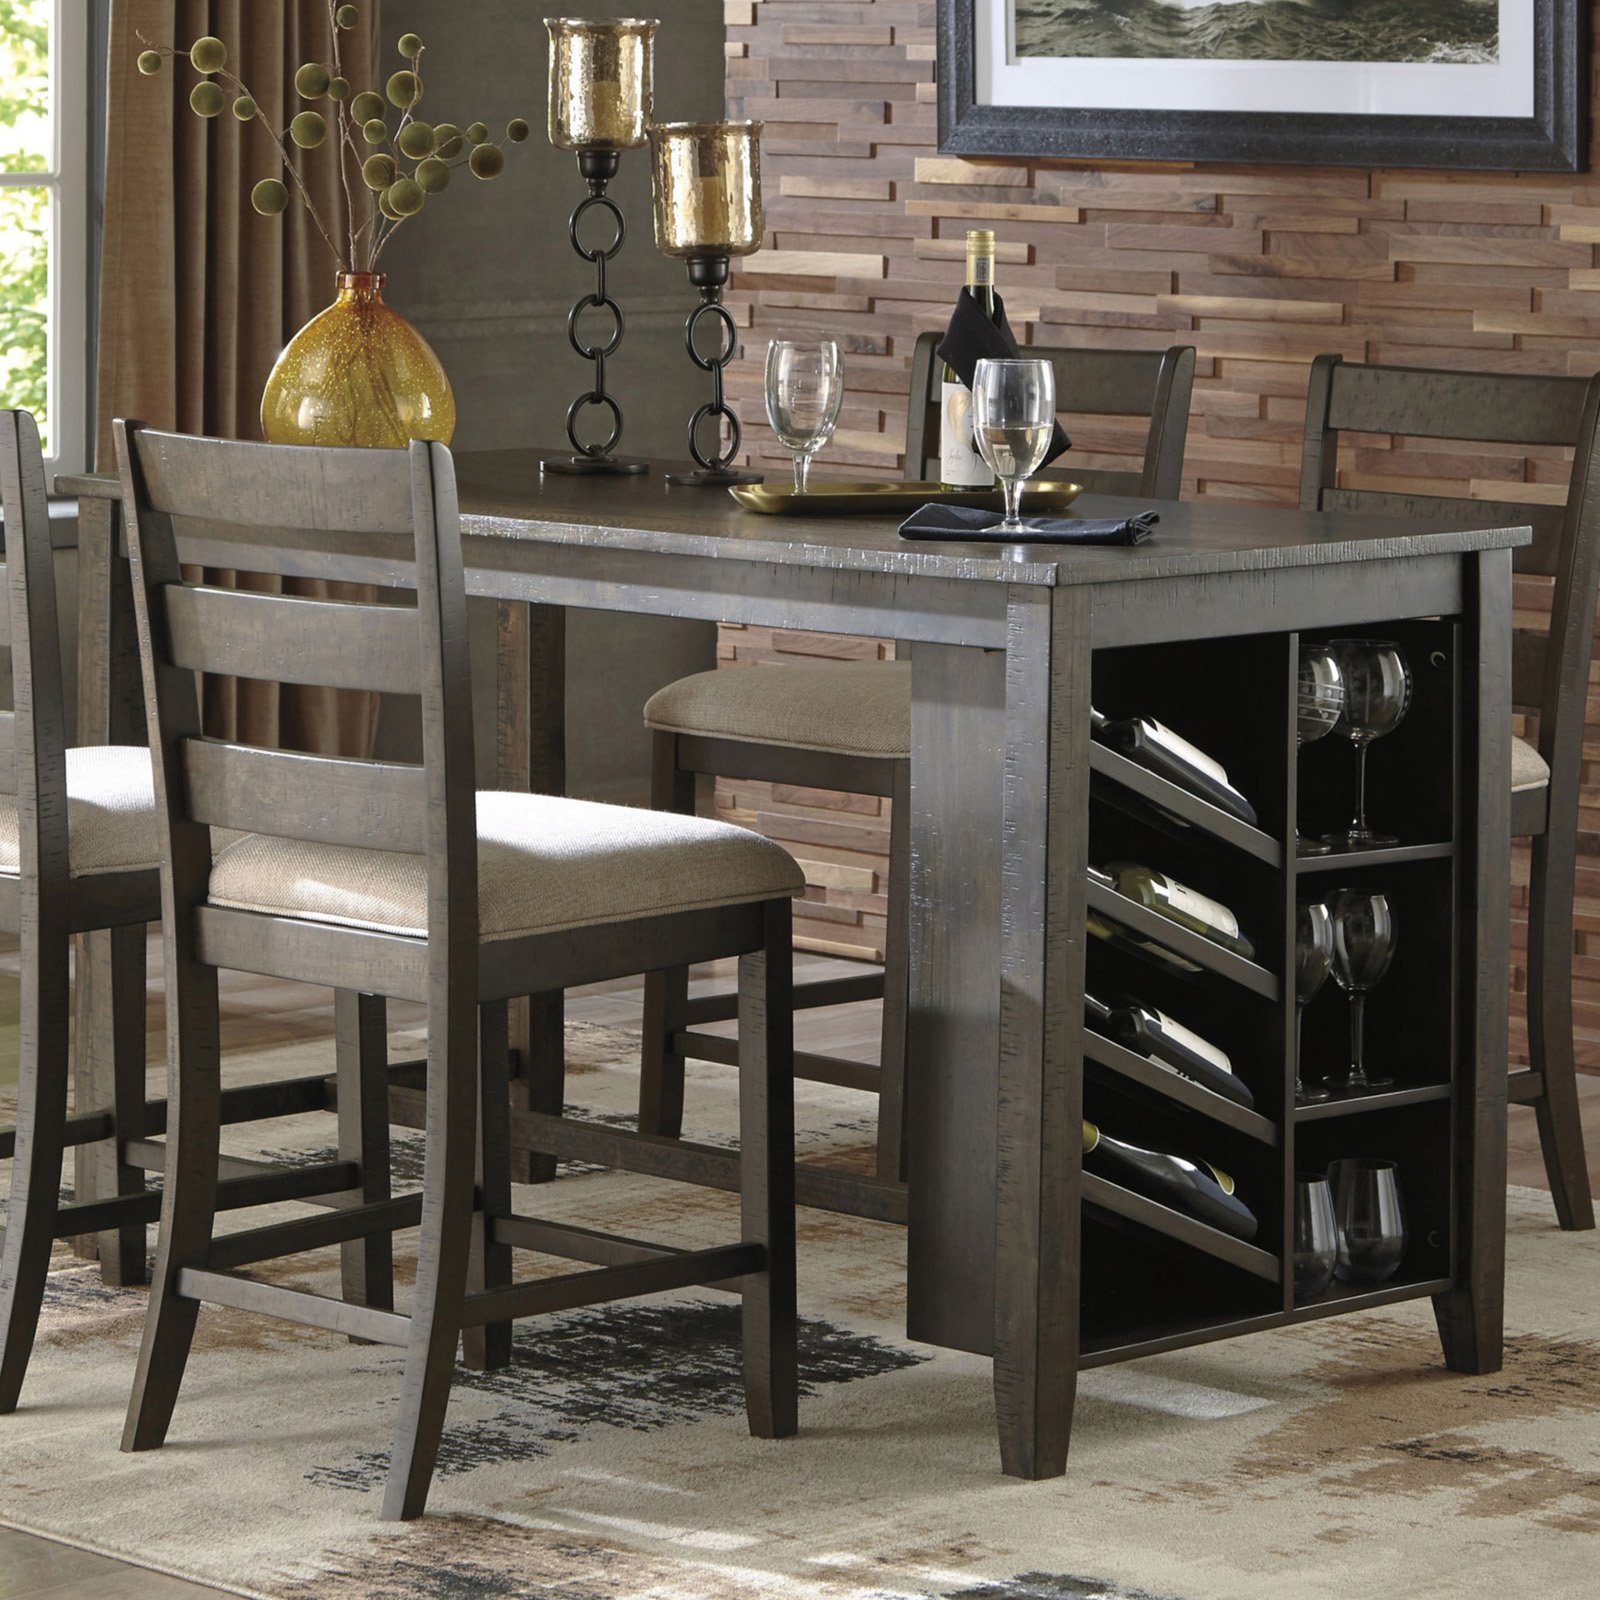 Superbe Kitchen Dining Counter High Tables